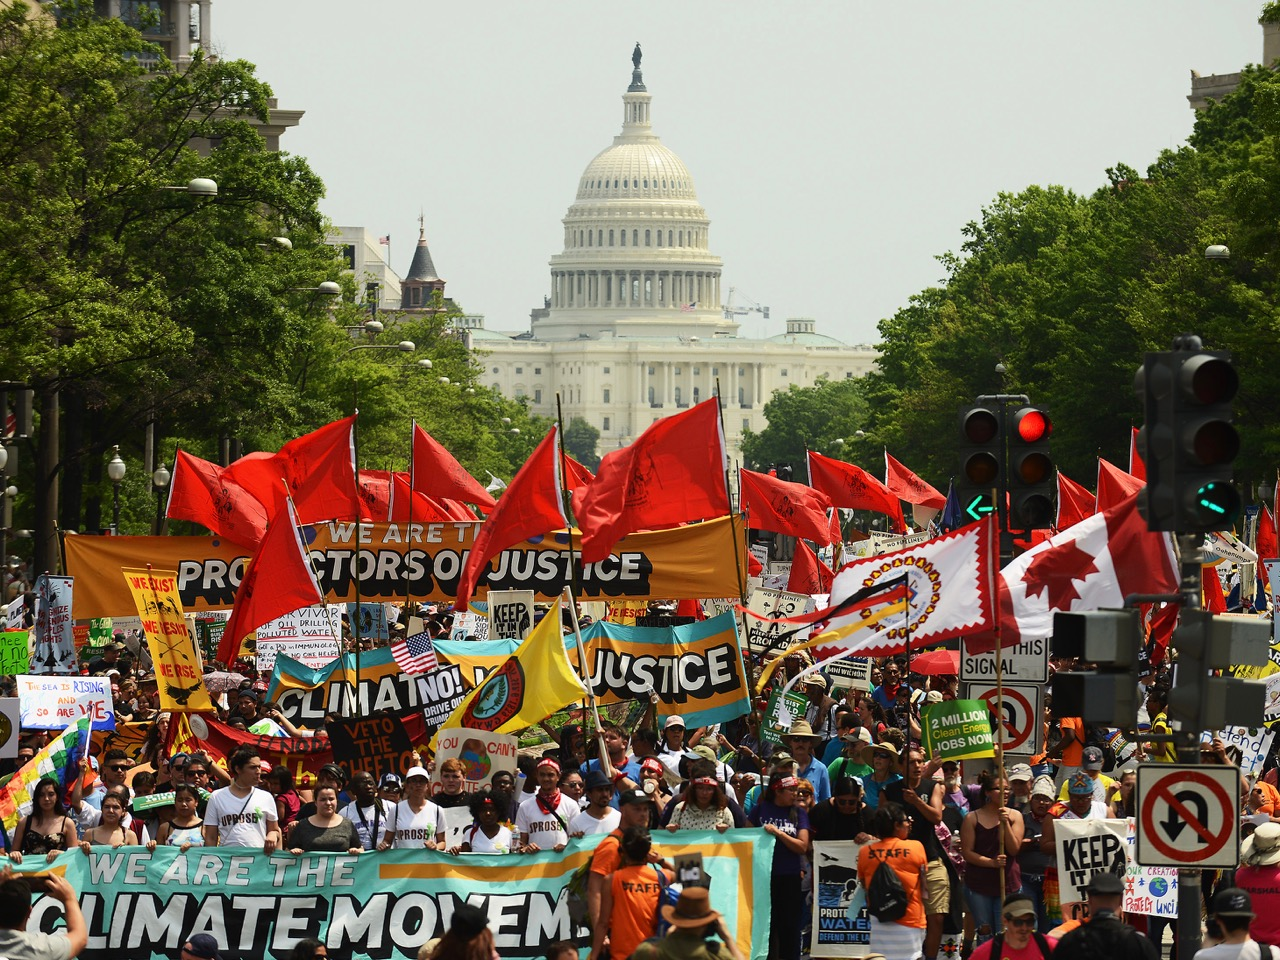 Climate Marches Take Place Across Country